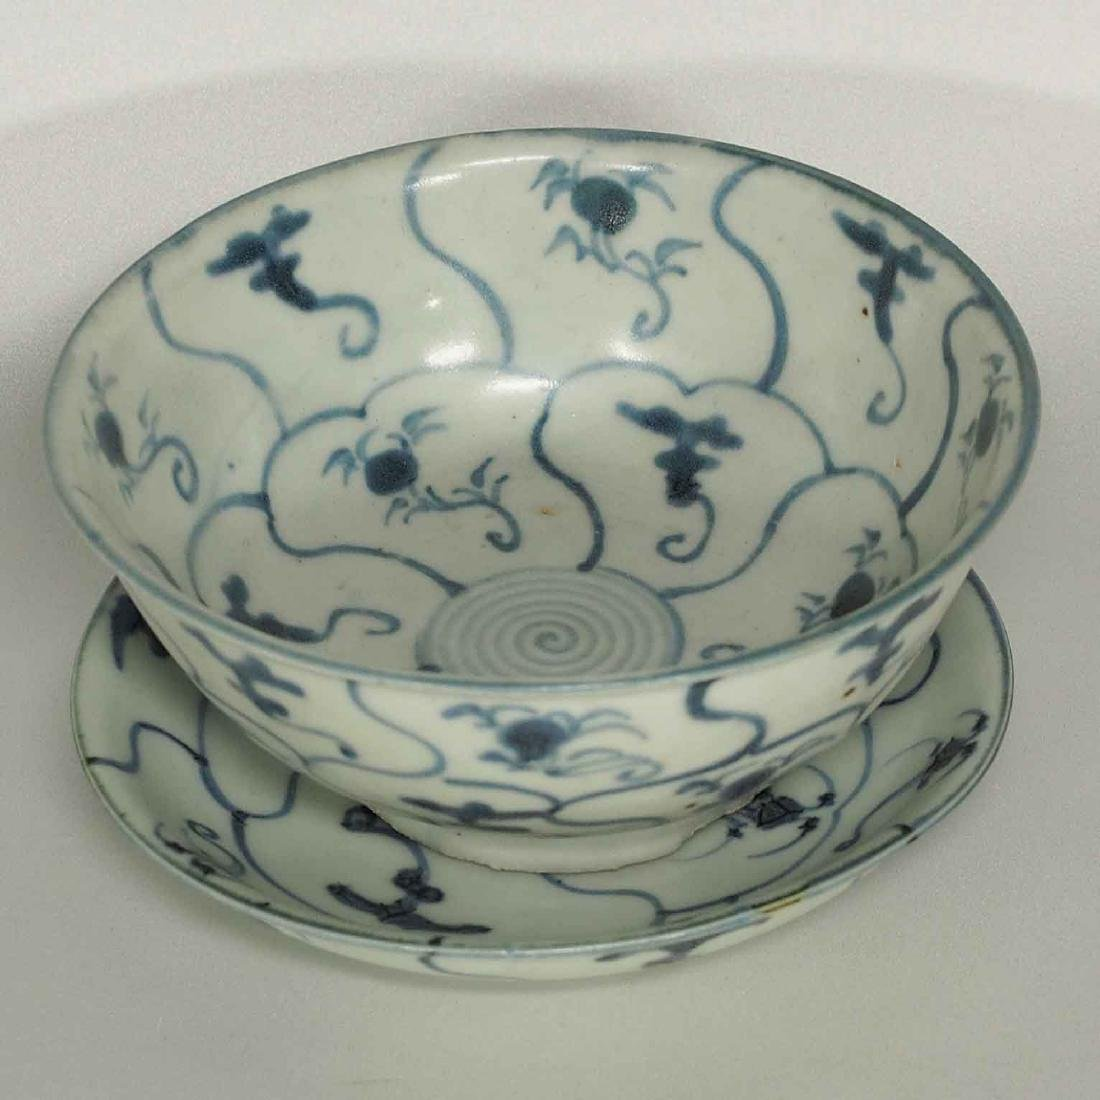 Set Bowl and Plate with Swirling Design, late Ming